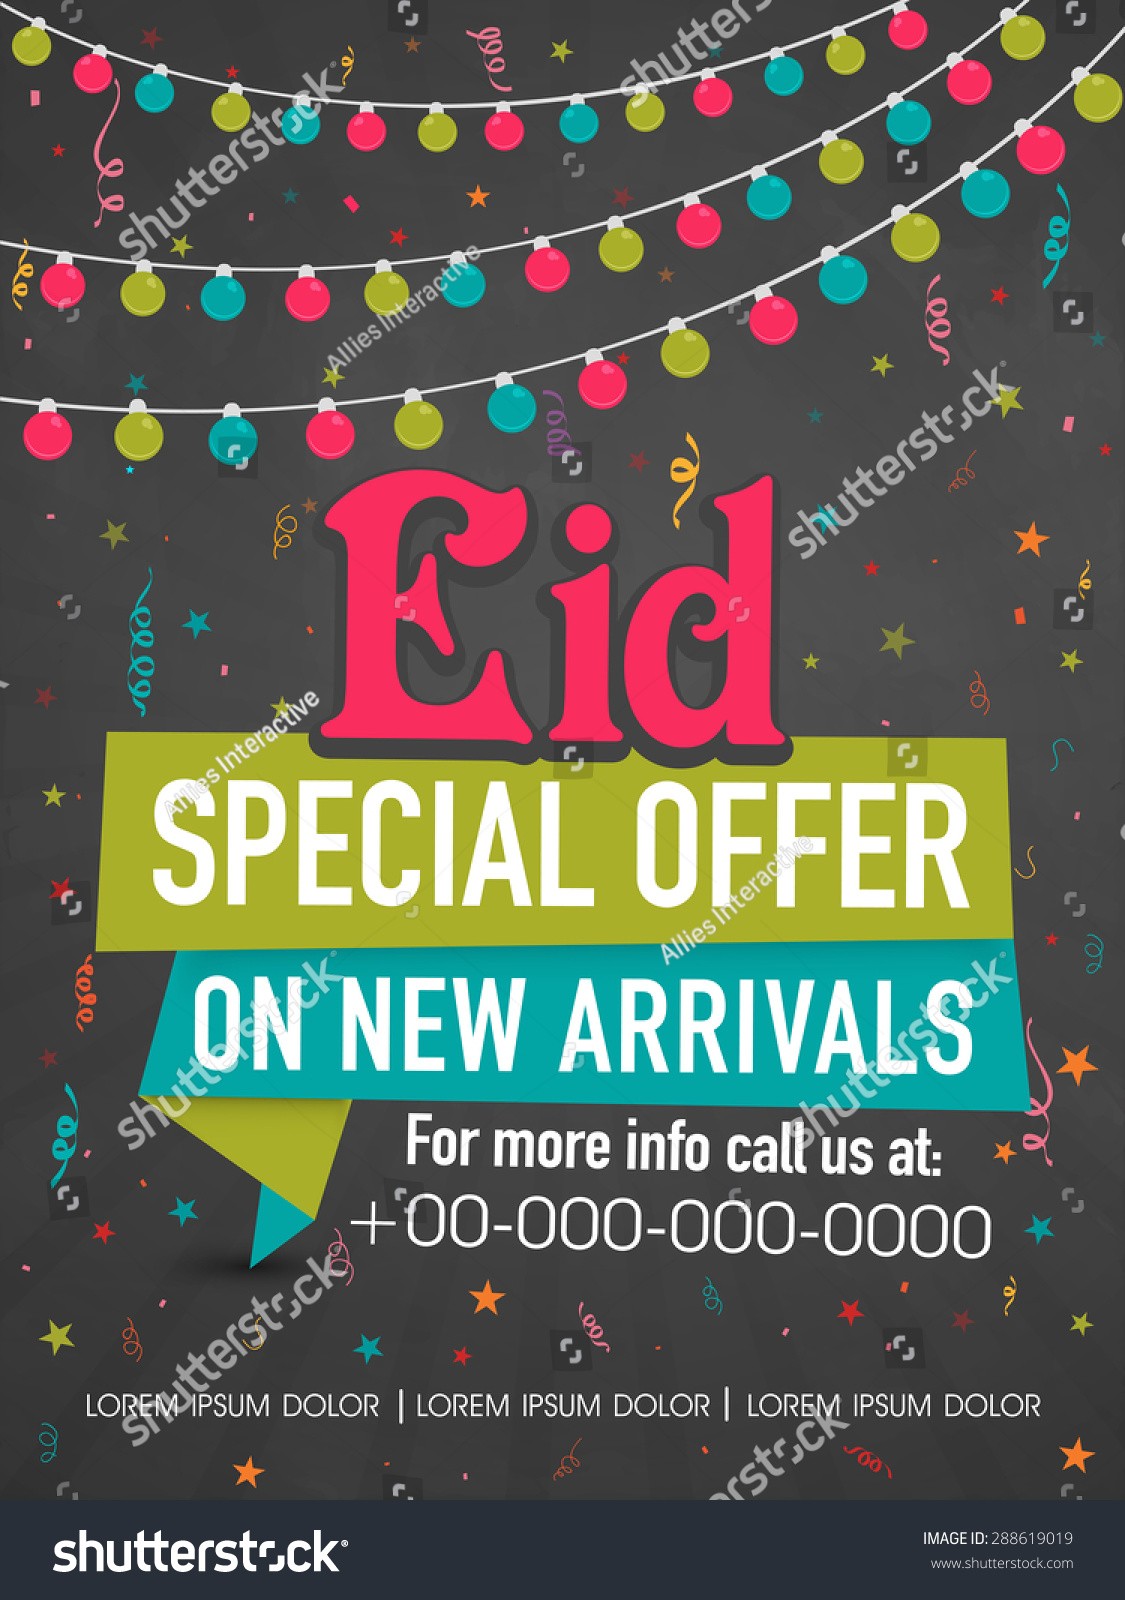 colorful lights stars decorated poster banner stock vector colorful lights and stars decorated poster banner or template for eid special offer on new